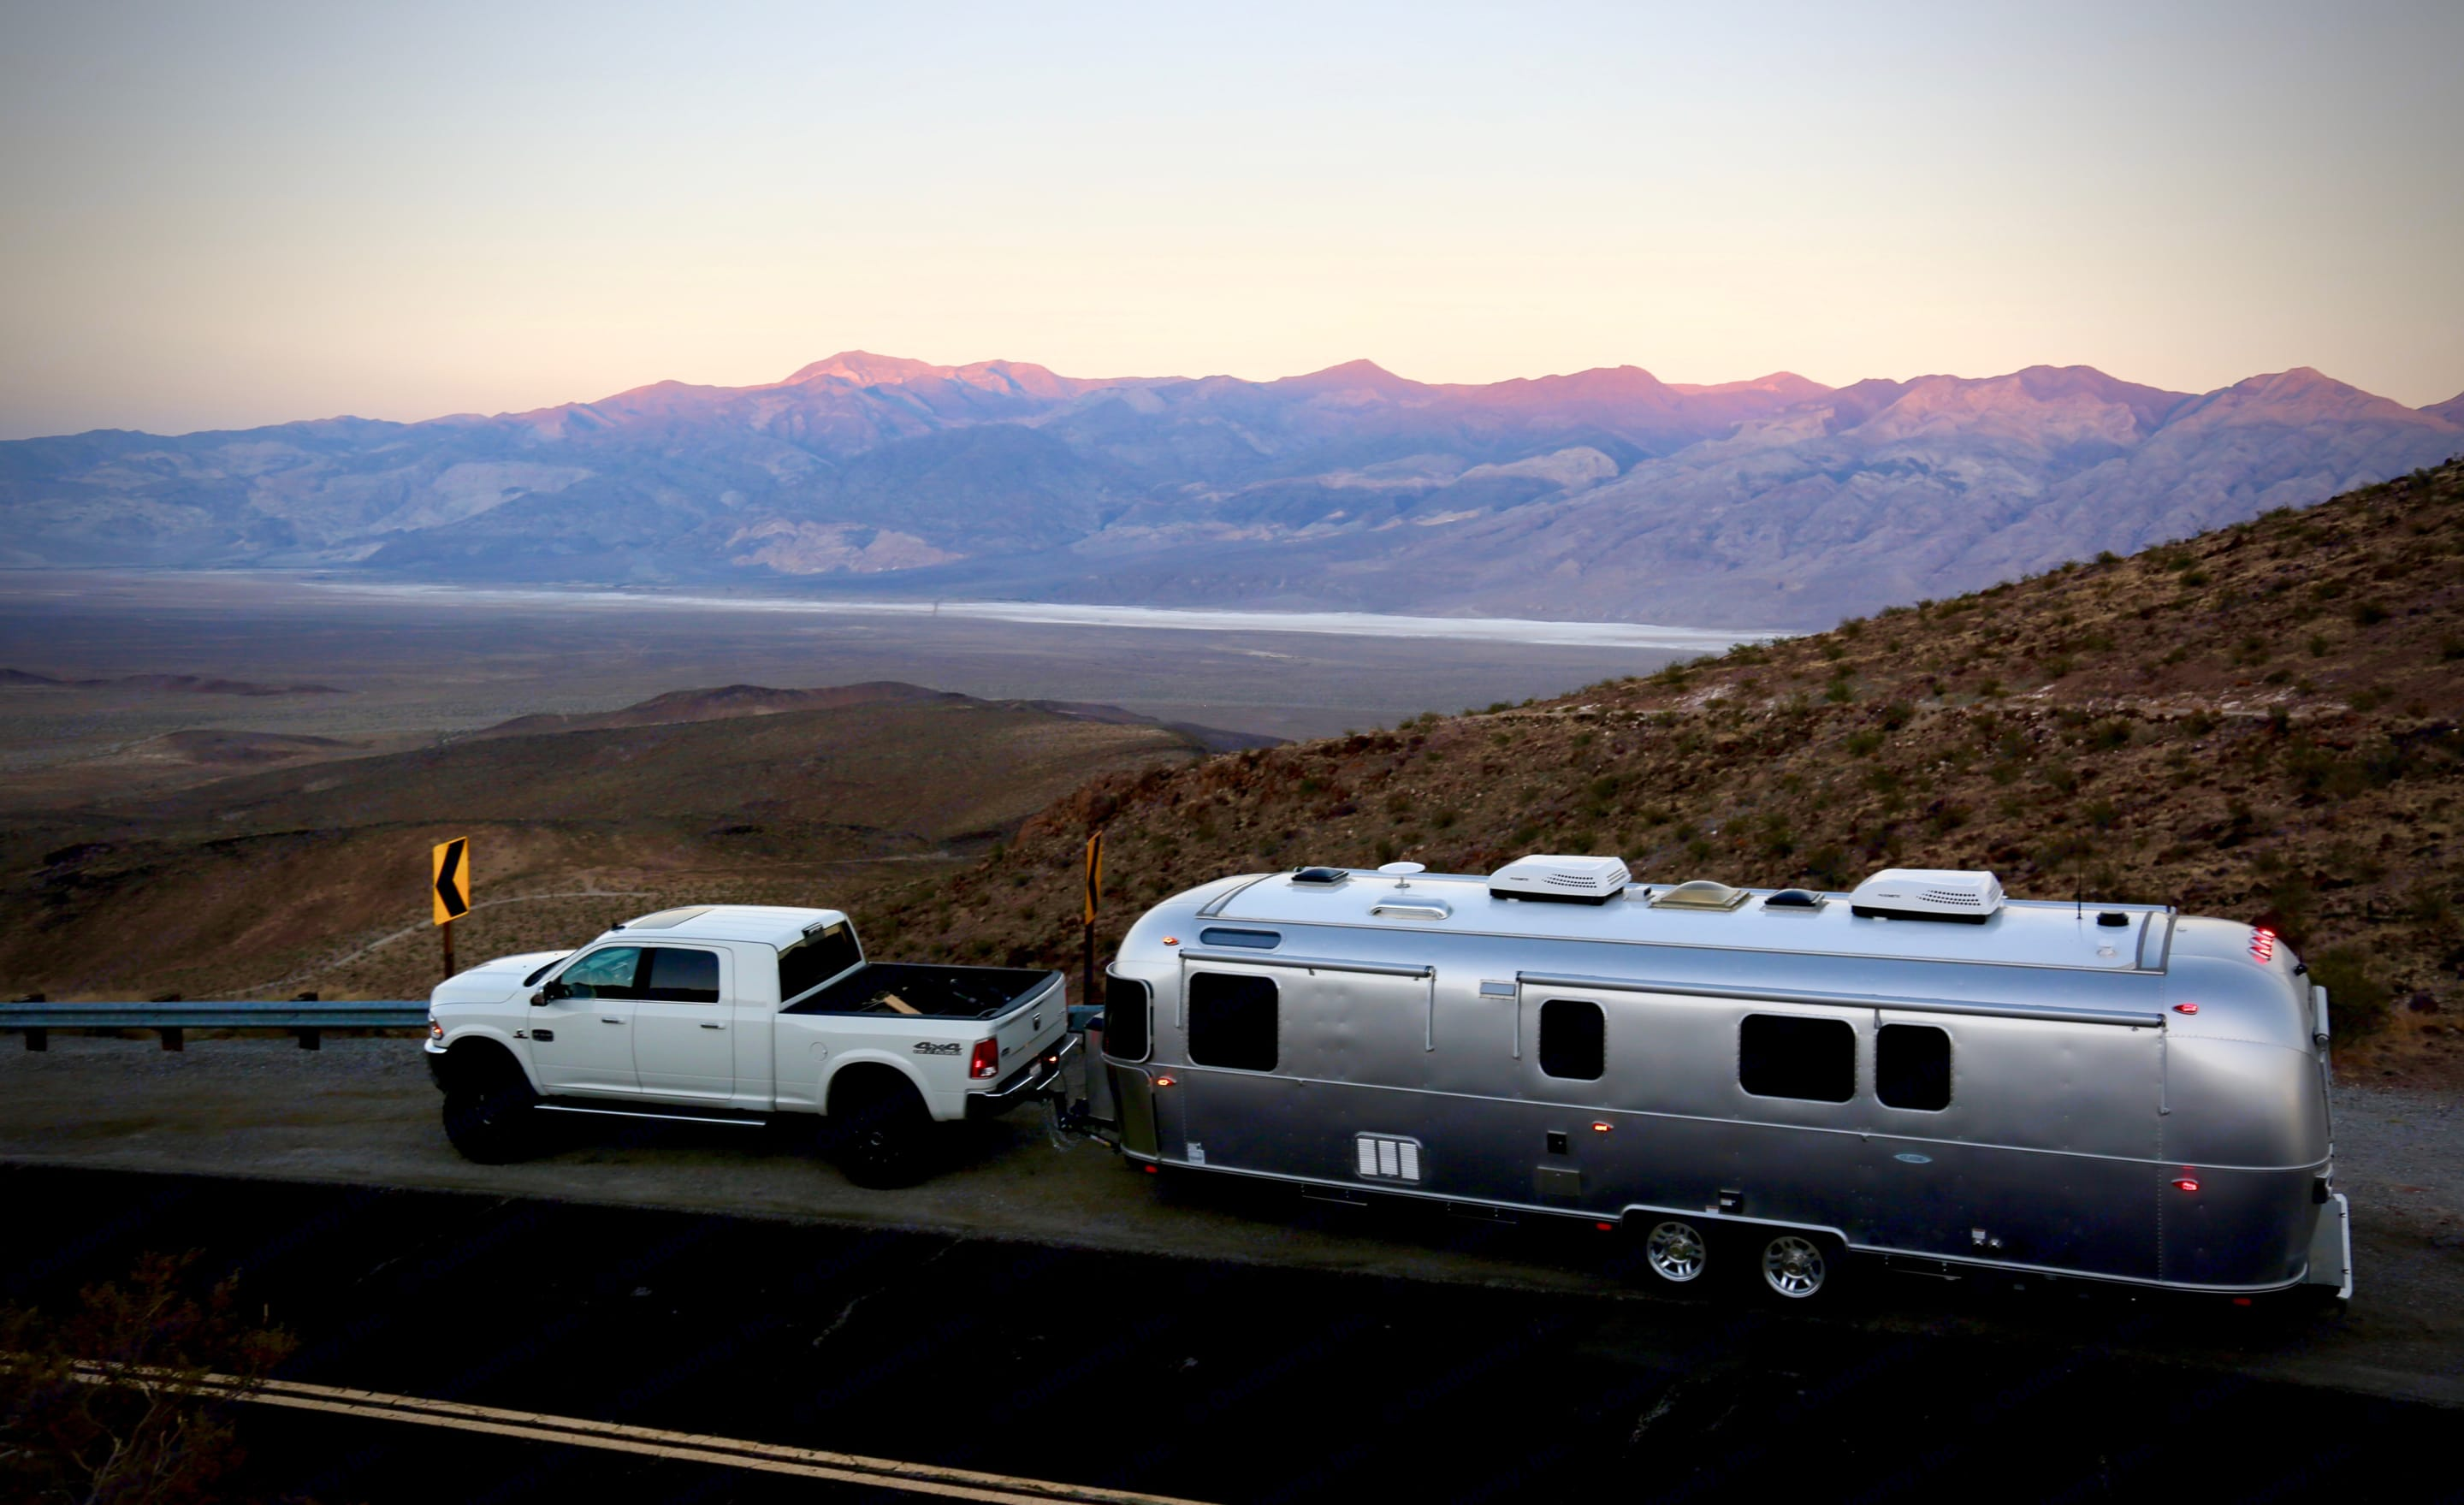 Imagine your self on the open road going places you always dreamed of in the ultimate style and comfort of 2018 Airstream classic :). Airstream Classic 2018